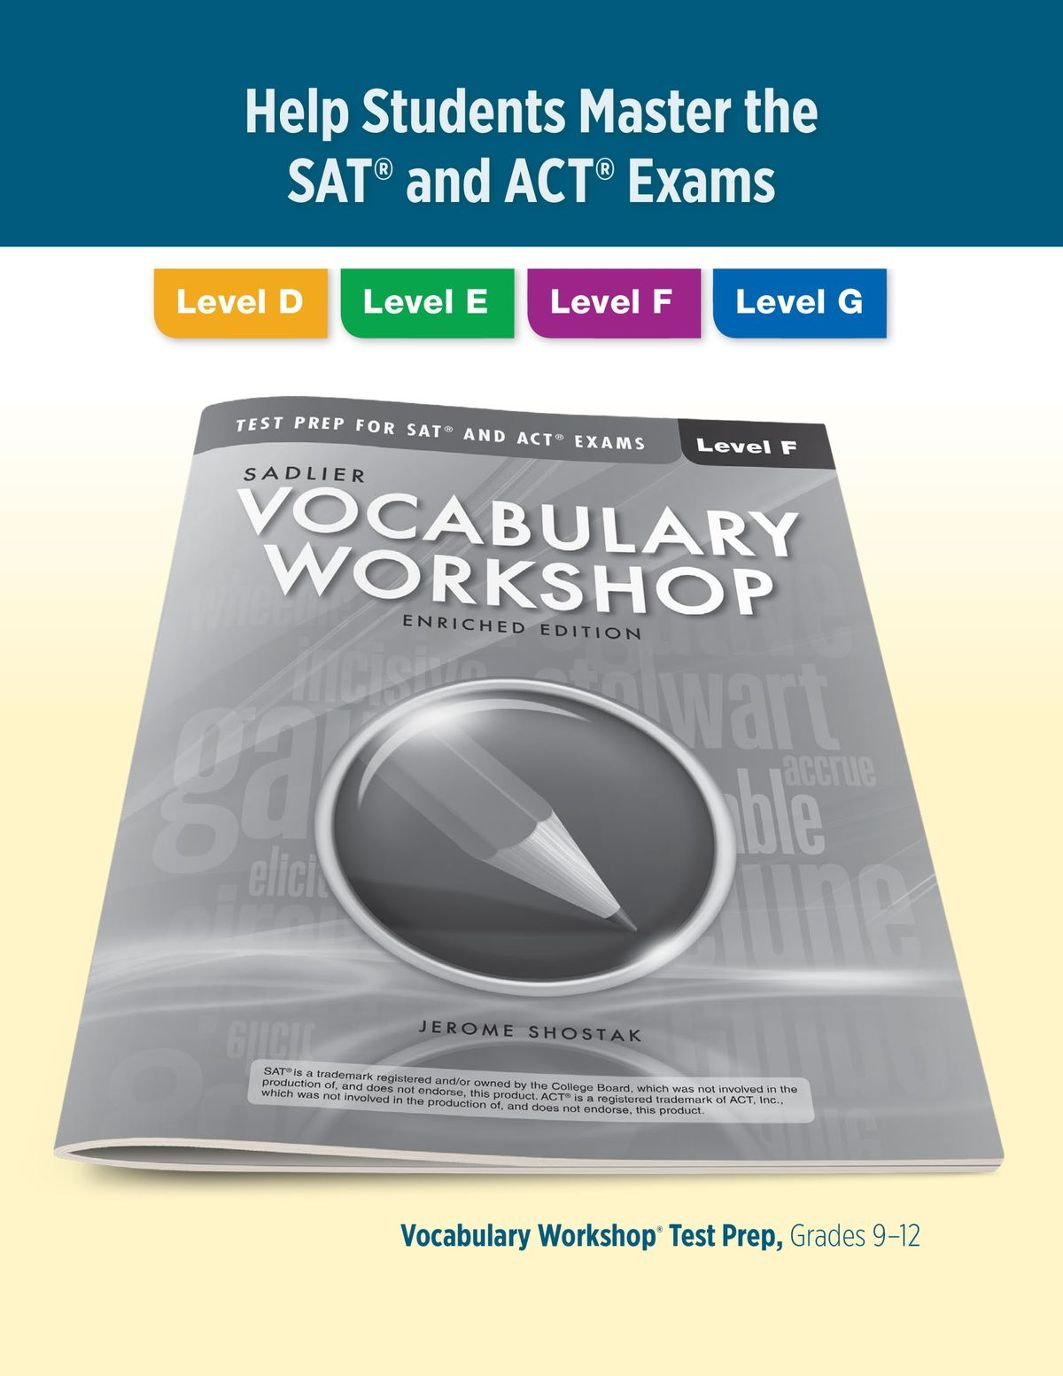 Vocabulary workshop test prep for sat and act exams page 1 fandeluxe Gallery